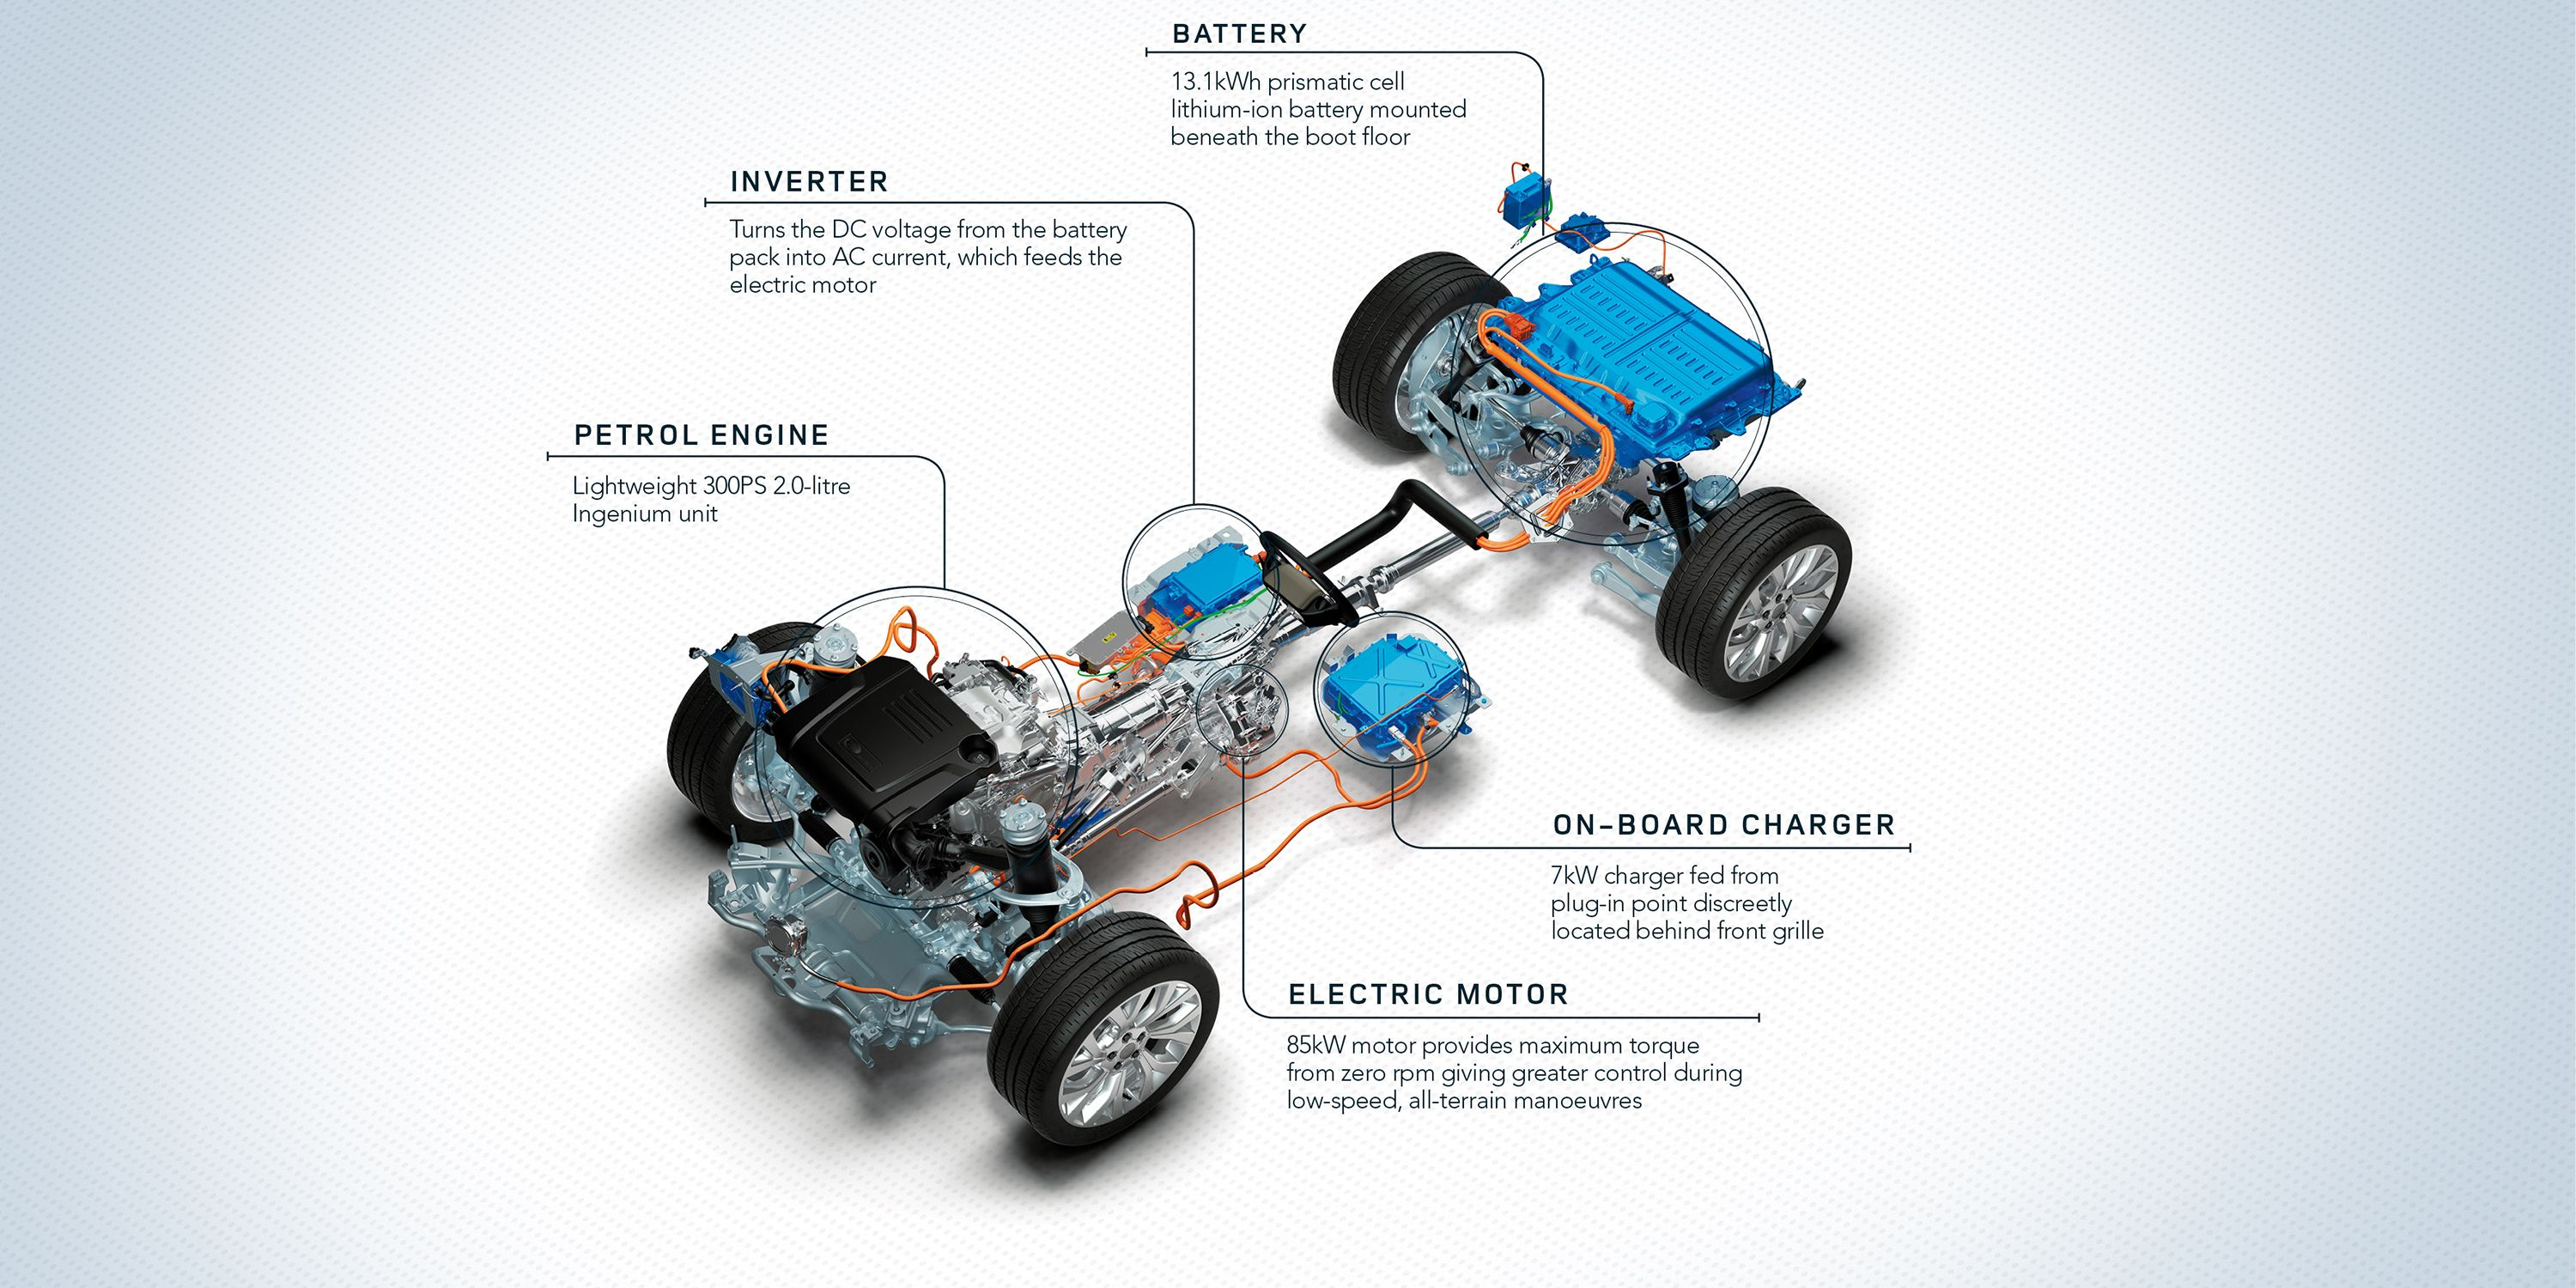 Land Rover Drivetrain Diagram Electrical Wiring Diagrams Series 2 Engine Range 2018 Specs News Price New 2019 Plug In Hybrid Car Sides